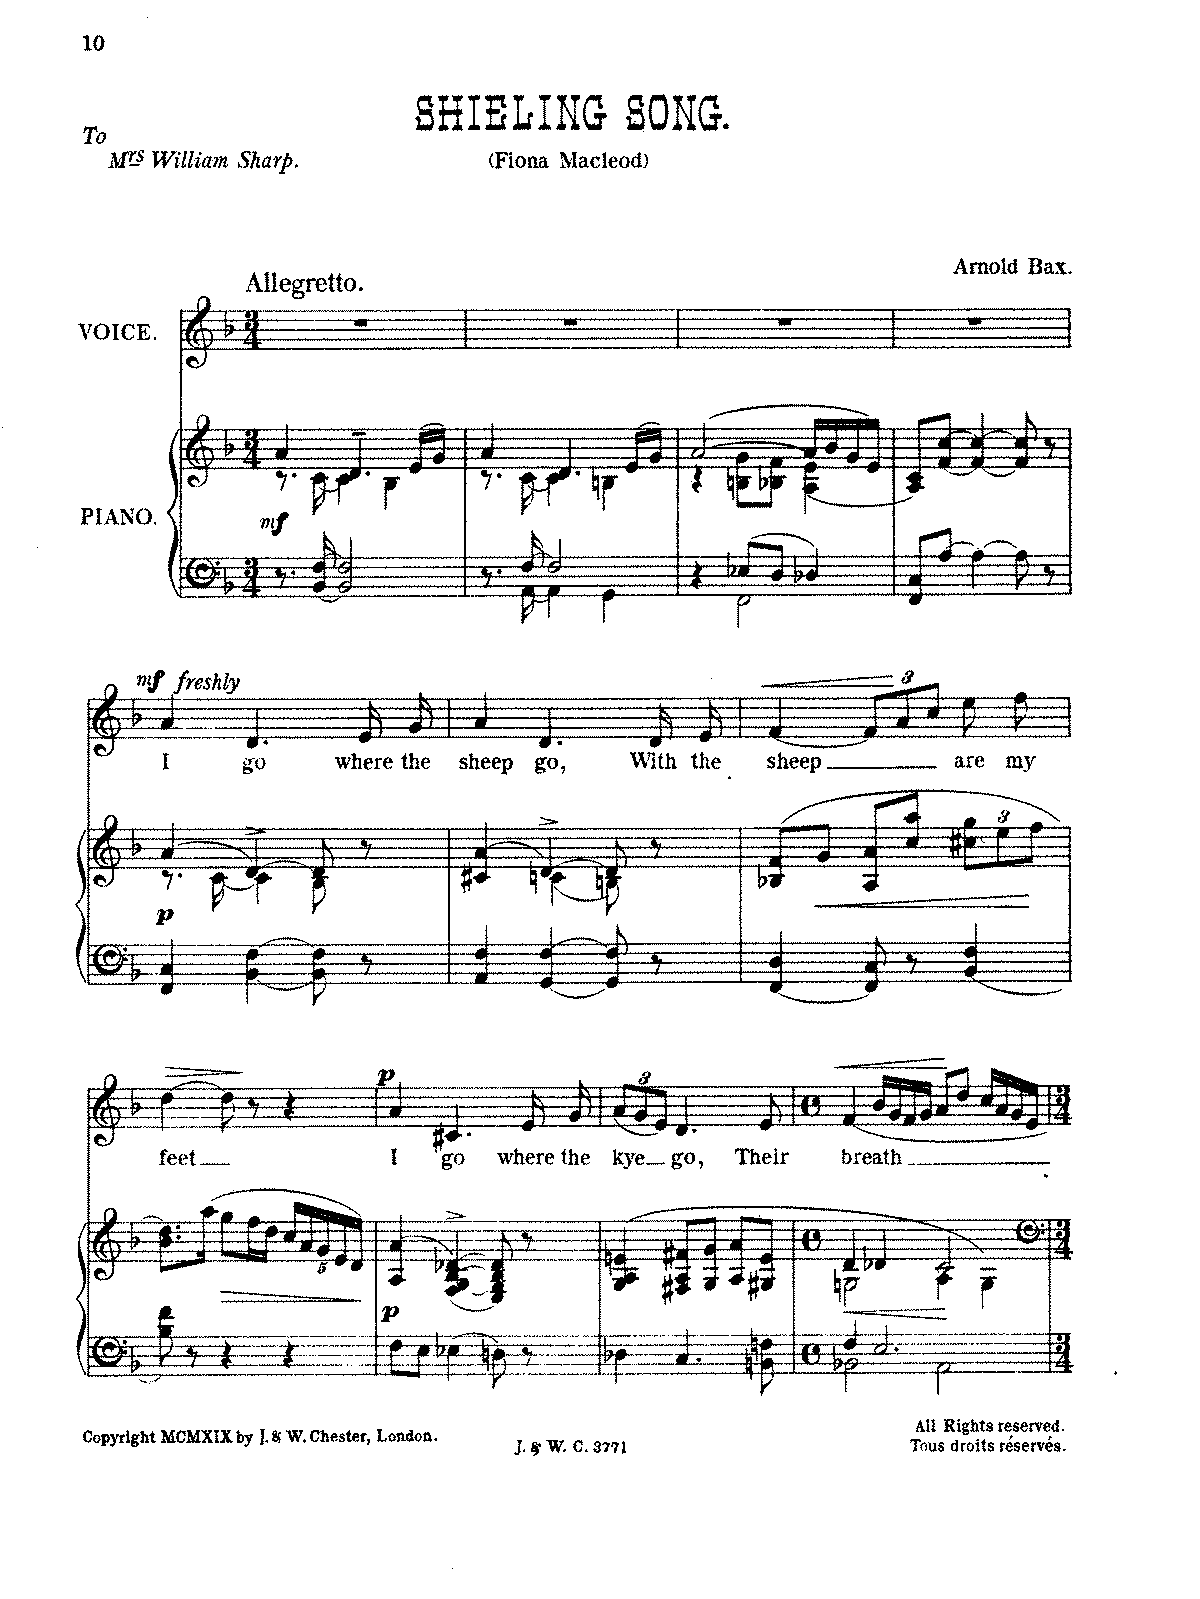 PMLP46207-Bax - Shieling Song (voice and piano).pdf